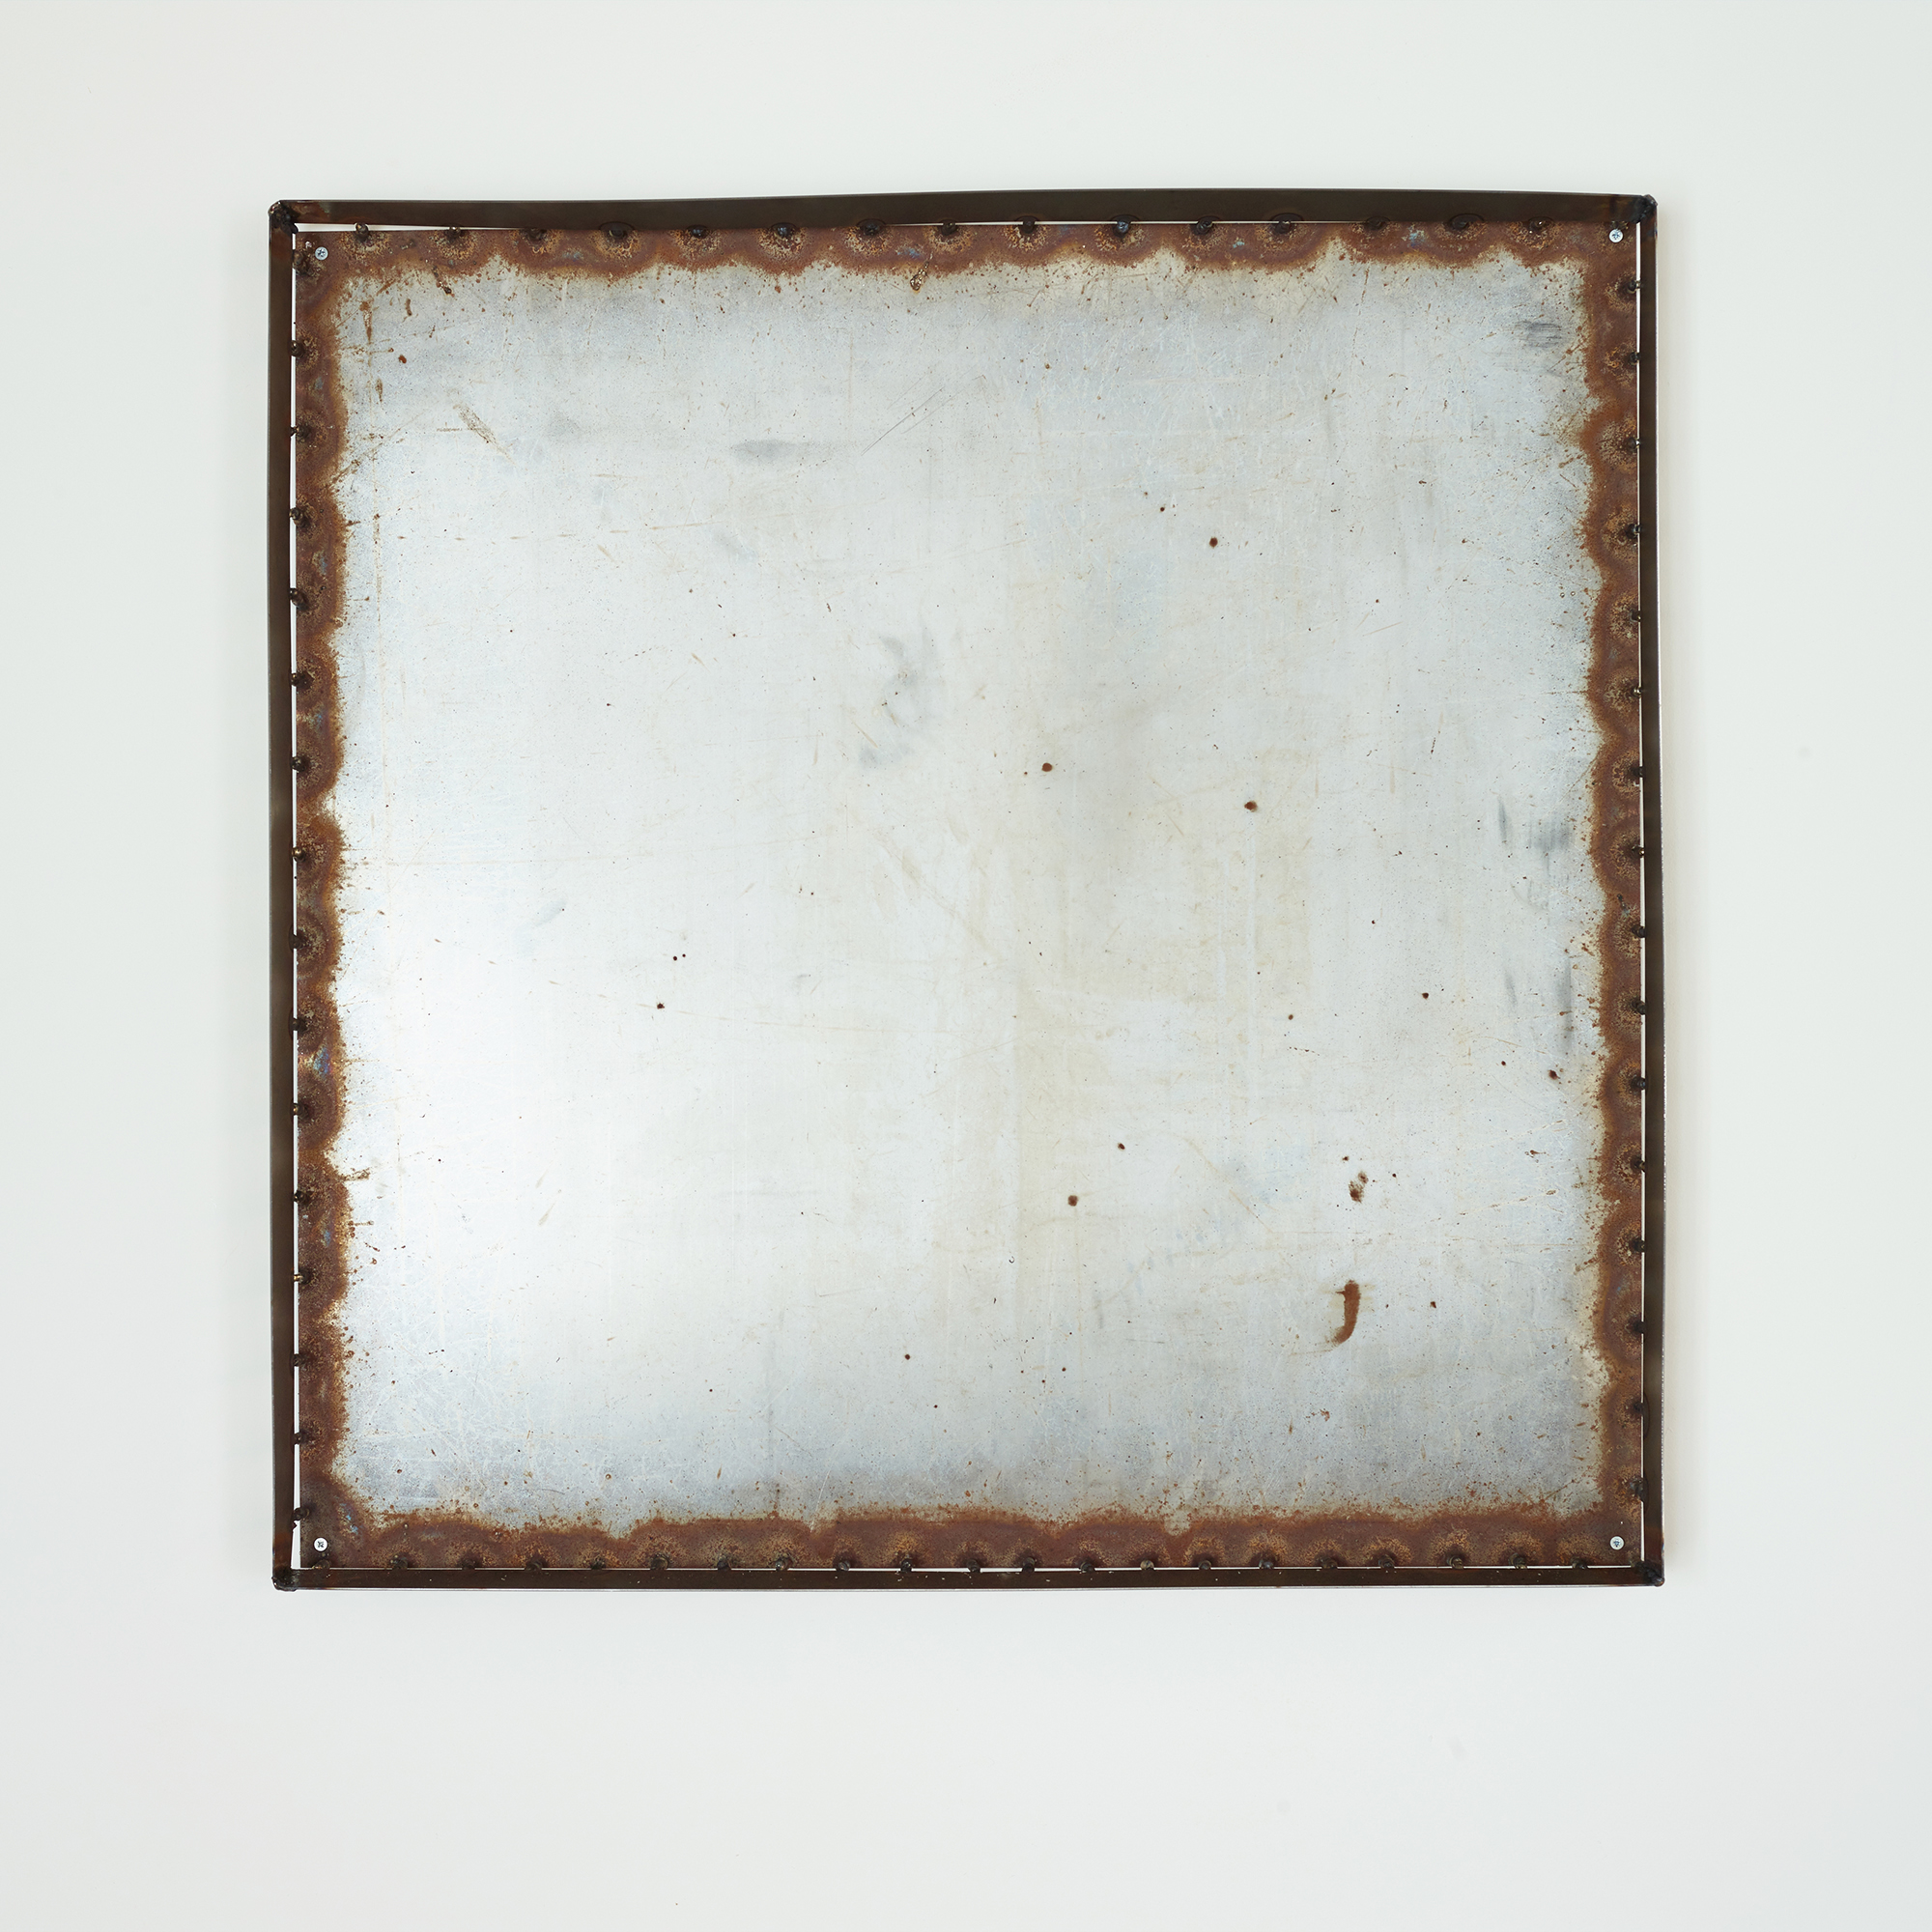 Mild steel and stainless steel weld. 96 x 96 x 10cm